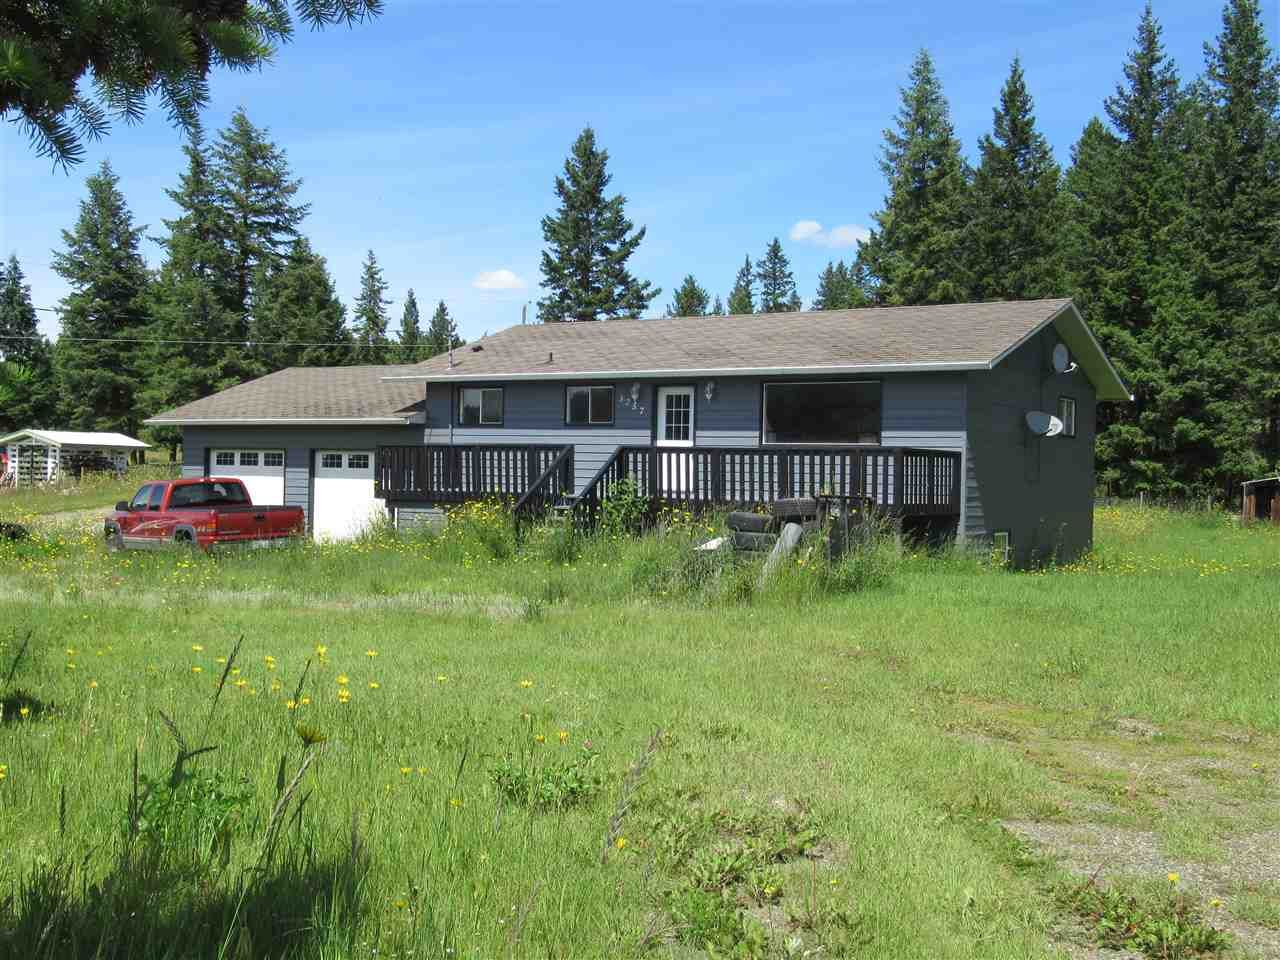 Photo 29: Photos: 3257 HINSCHE Road in Williams Lake: Williams Lake - Rural East House for sale (Williams Lake (Zone 27))  : MLS®# R2477340